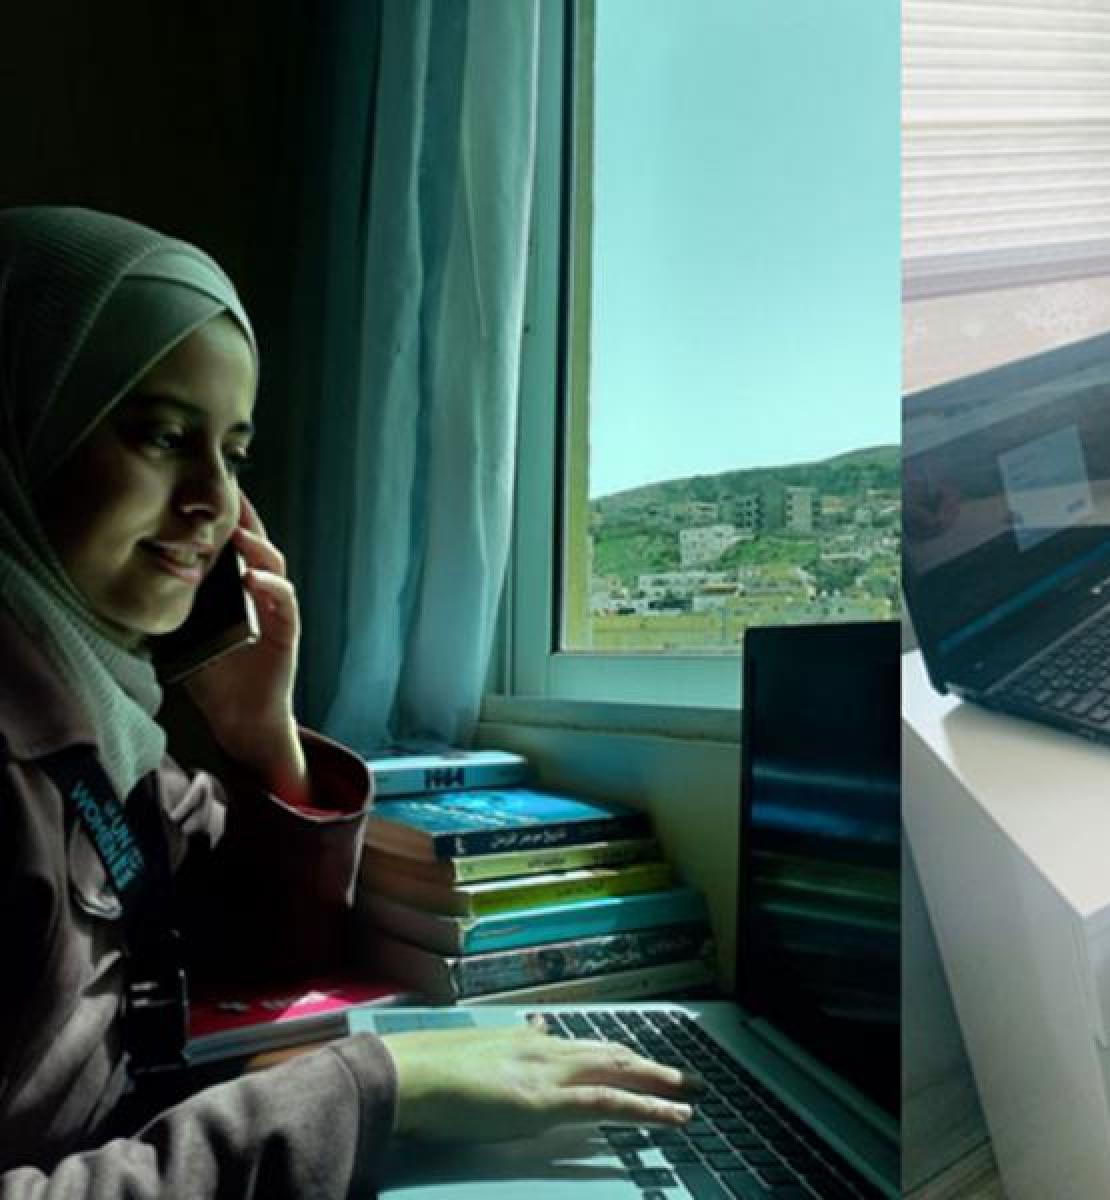 UN Women field assistants conduct daily support calls and disseminate messages through the Whatsapp groups.